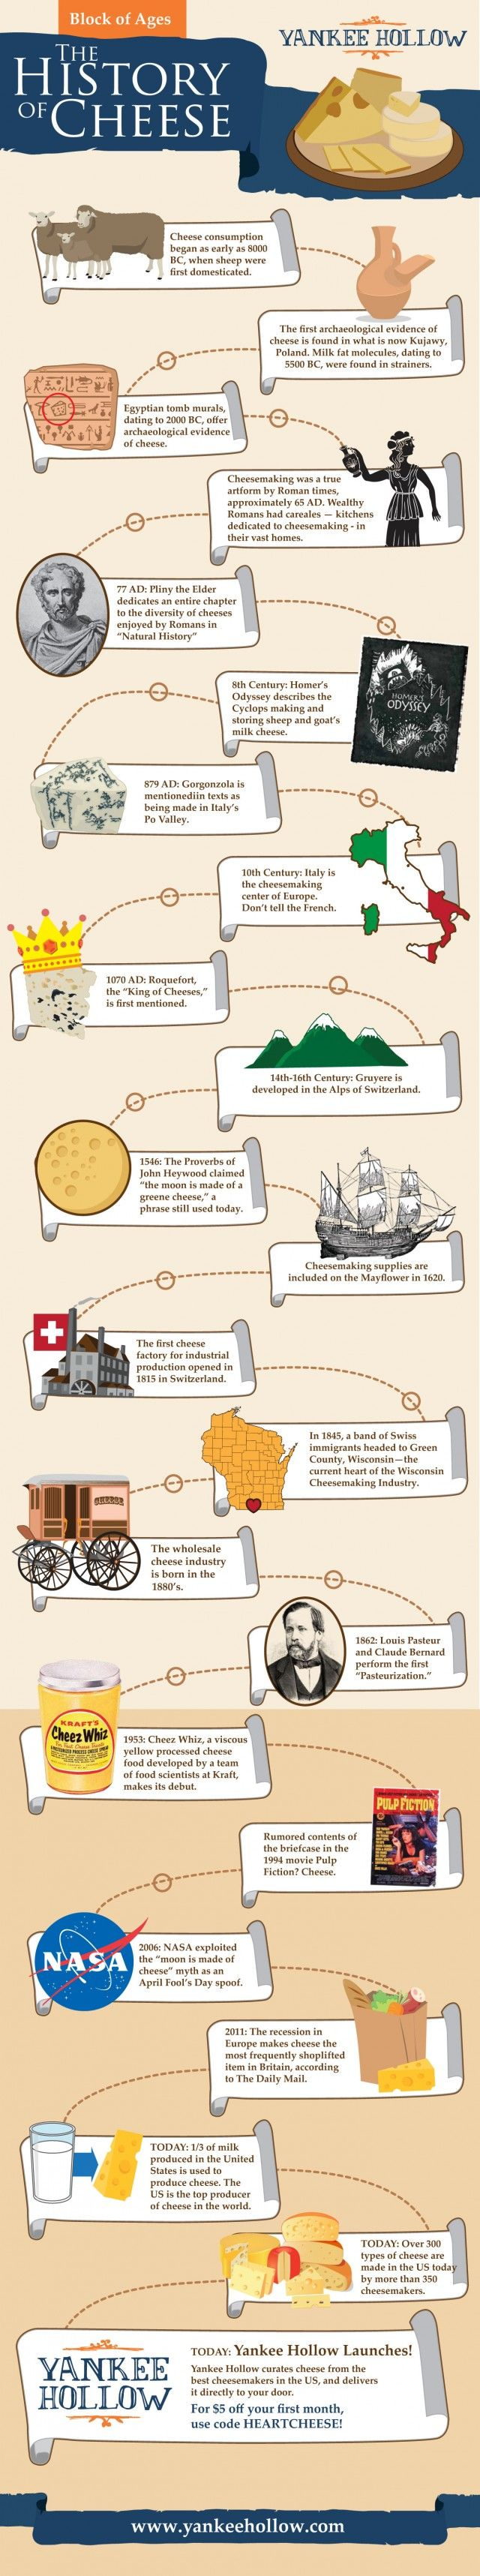 The History of Cheese #infographic #Infografía